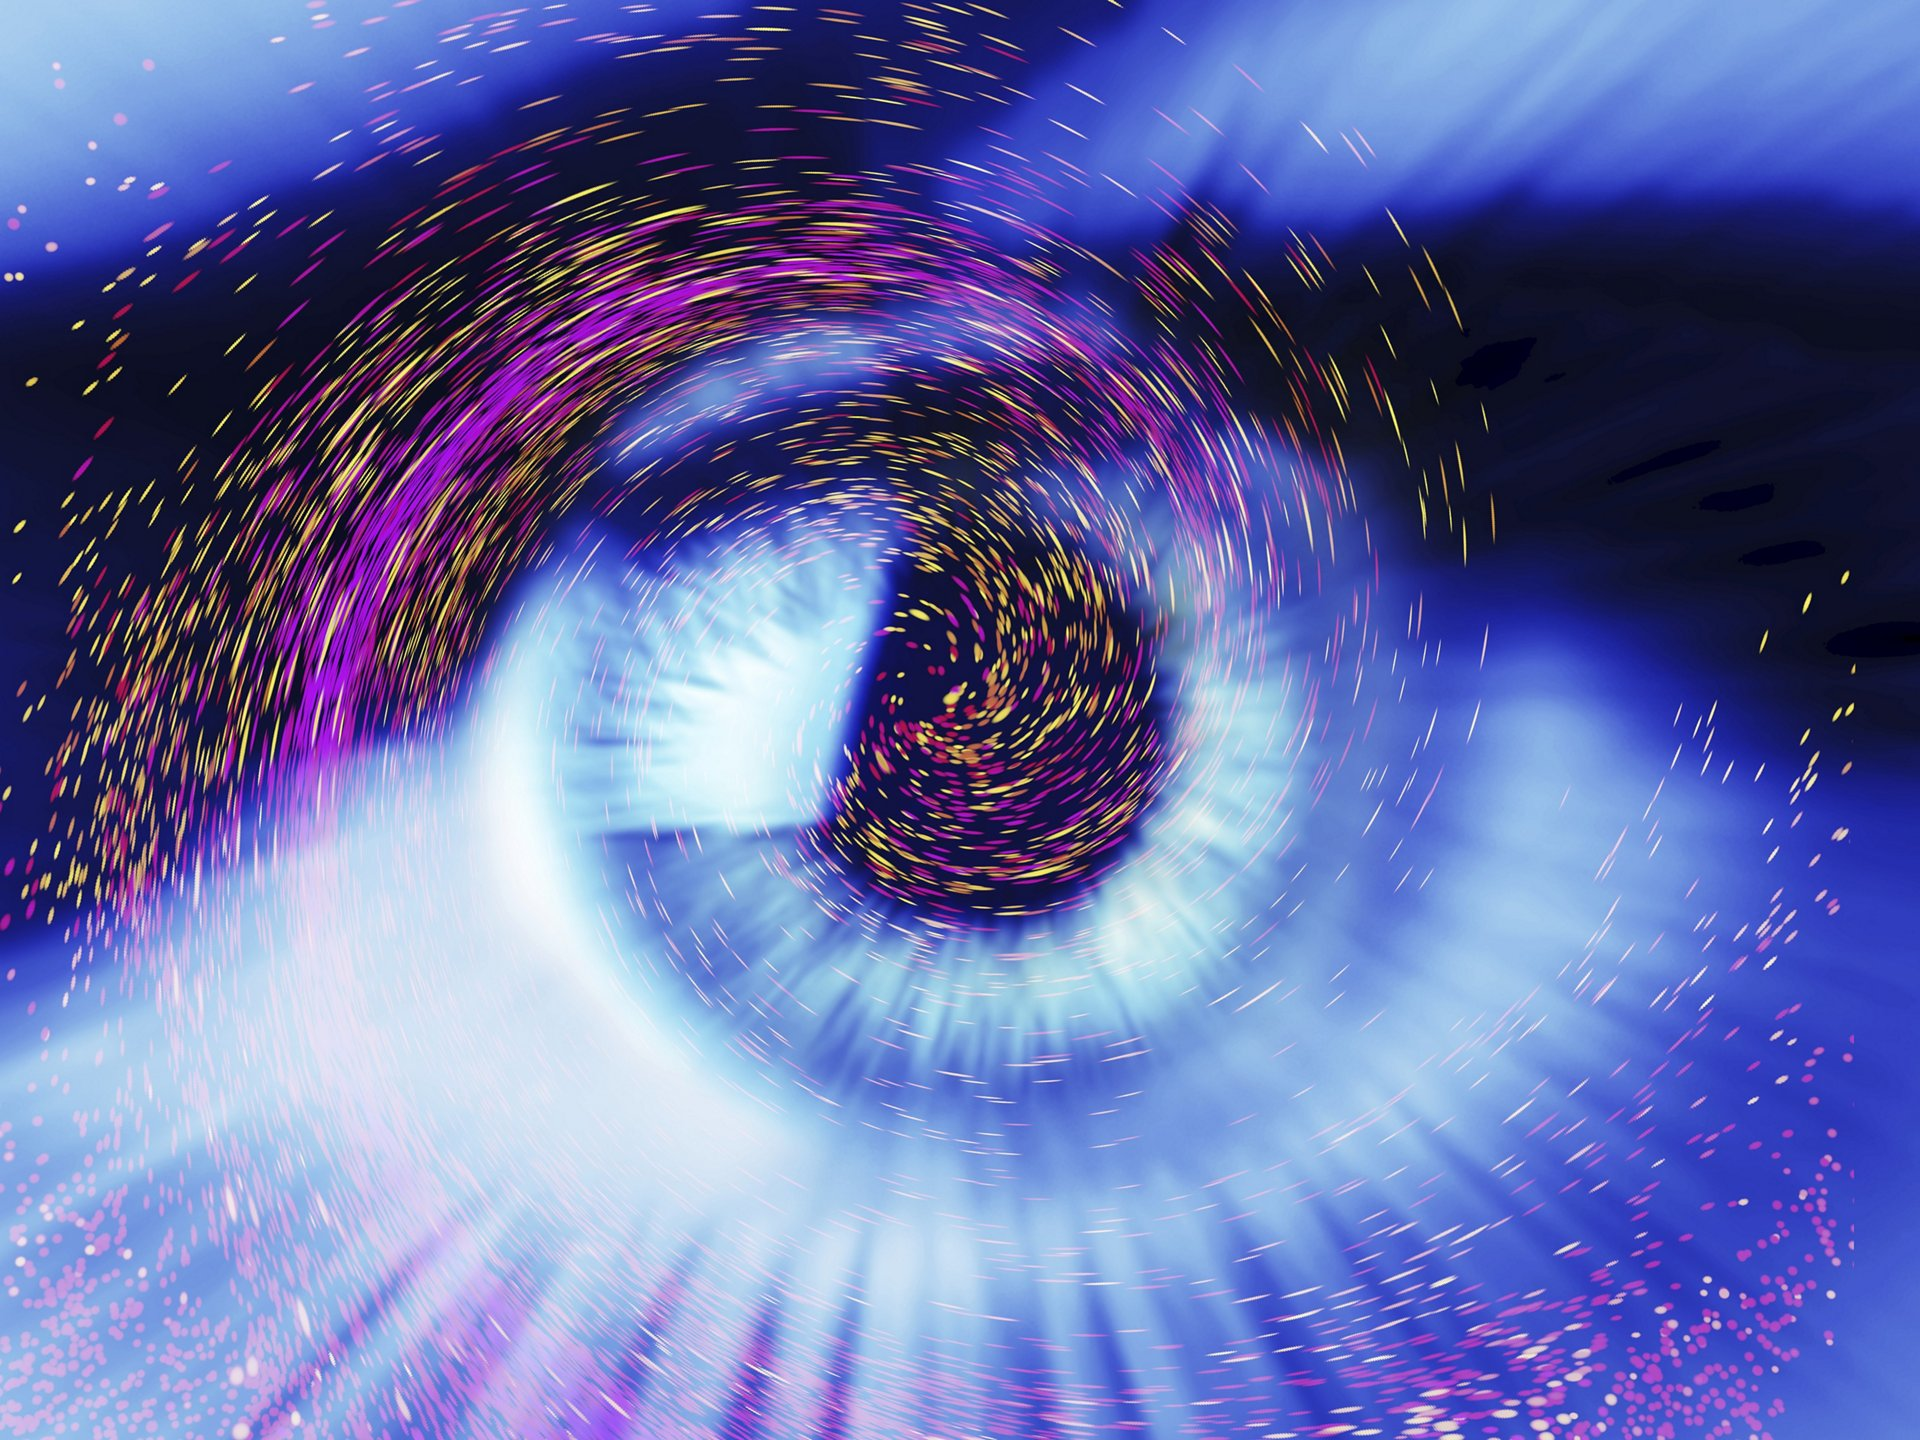 Photograph of a human eye overlaid computer artwork of colourful particles, depicting fantasy, imagination, dreaming, physics, light or stars.